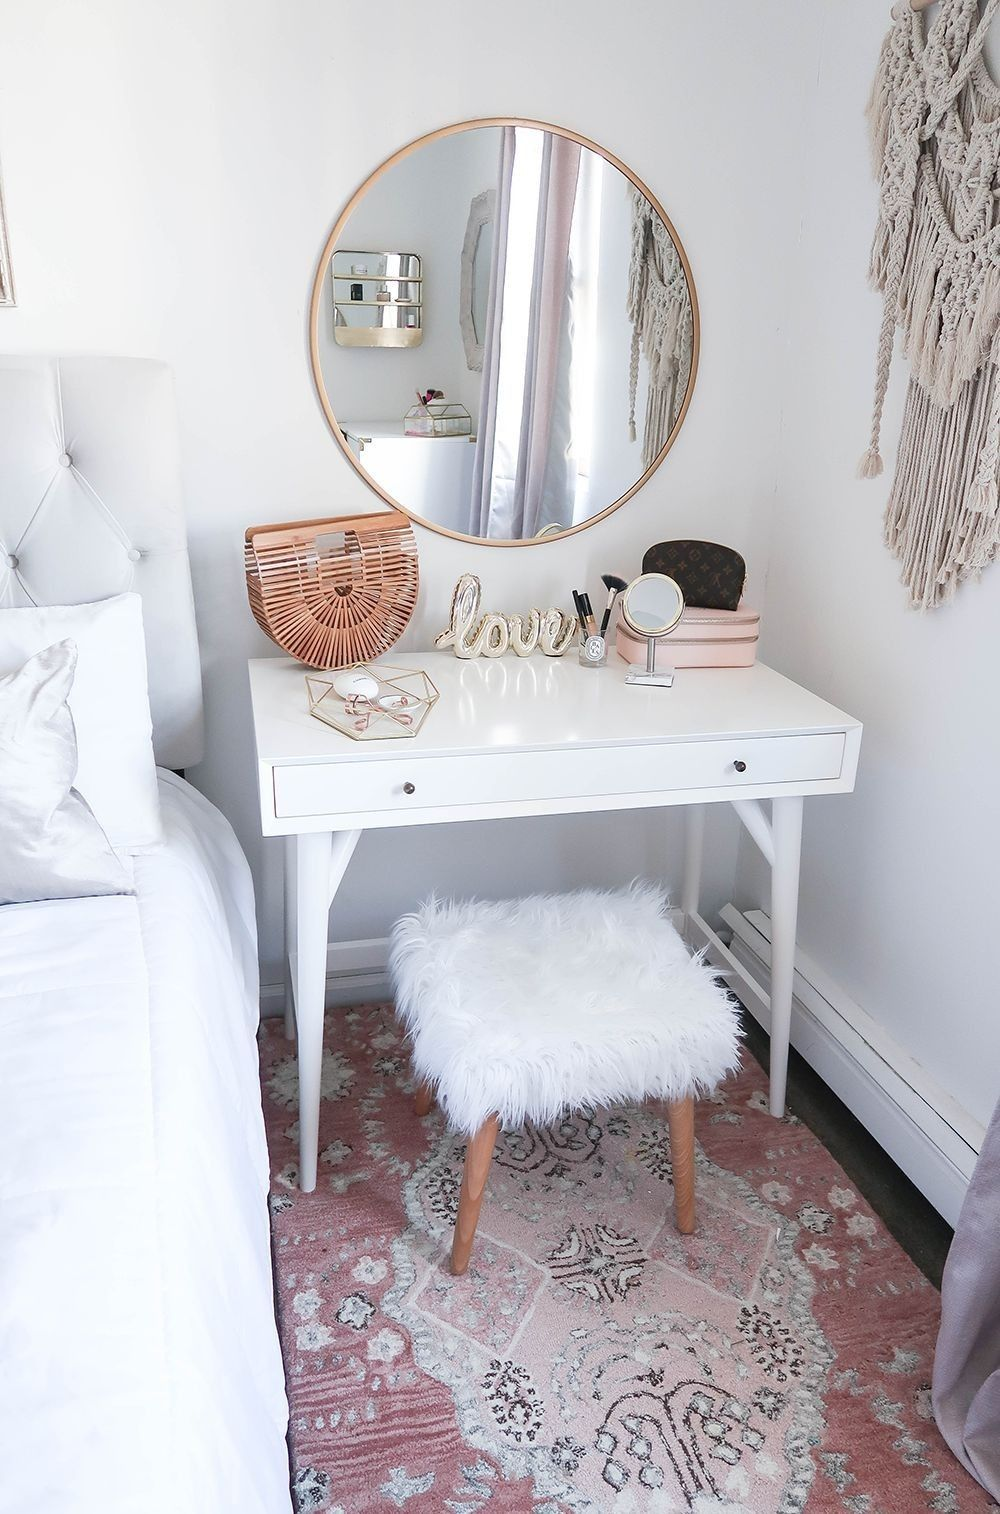 Pin by nelaelala . on room decor in 2019 | Bedroom decor ...